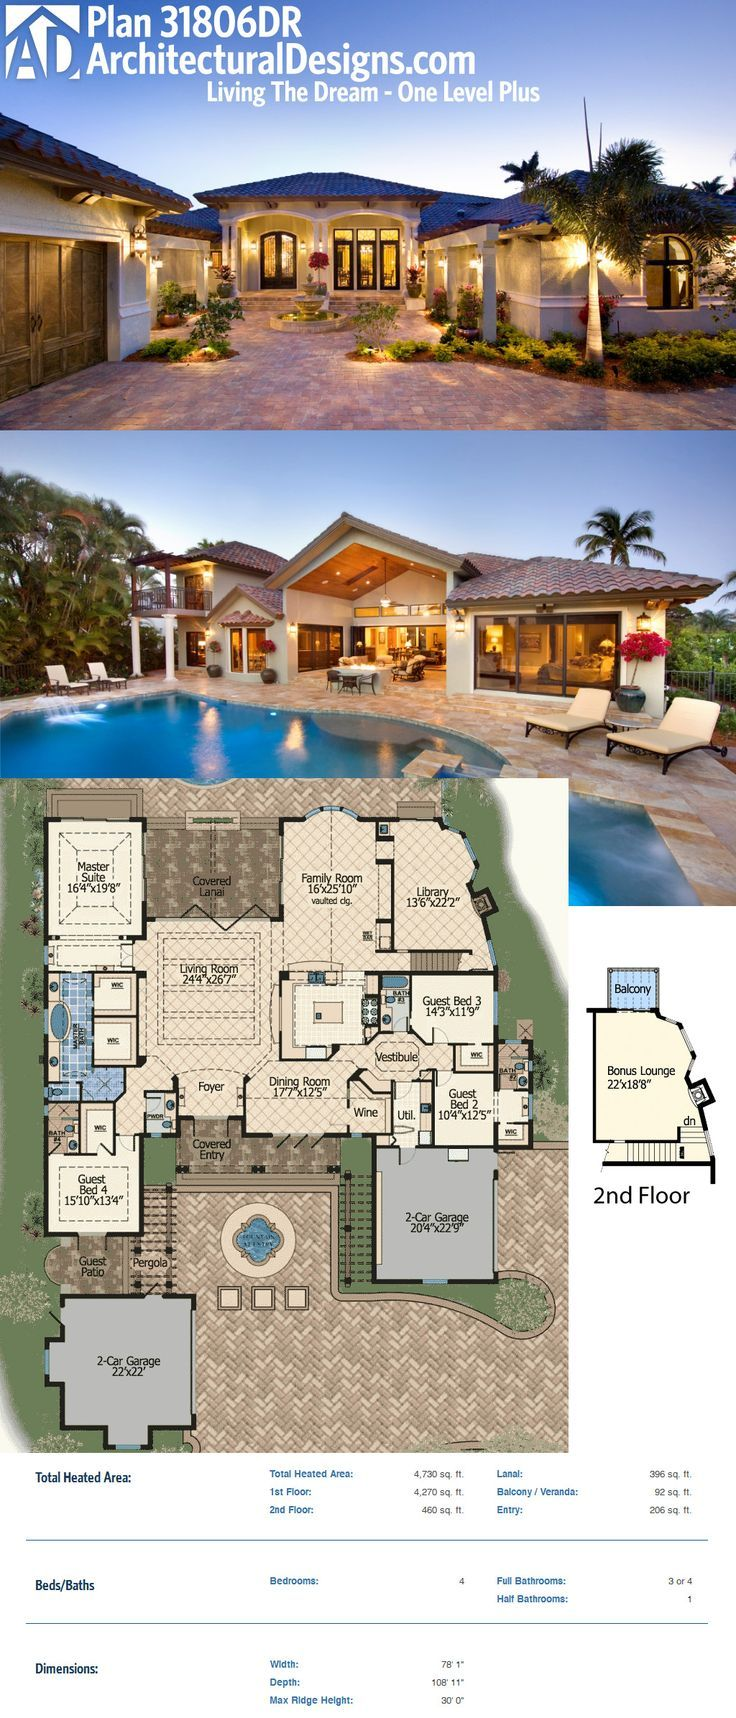 """Architectural Designs House Plan 31806DN – """"One Level Living Plus"""" – gives you over 2,900 square feet of living plus a lanai that opens to the living room by collapsing the back wall. Ready when you are. Where do YOU want to build?"""